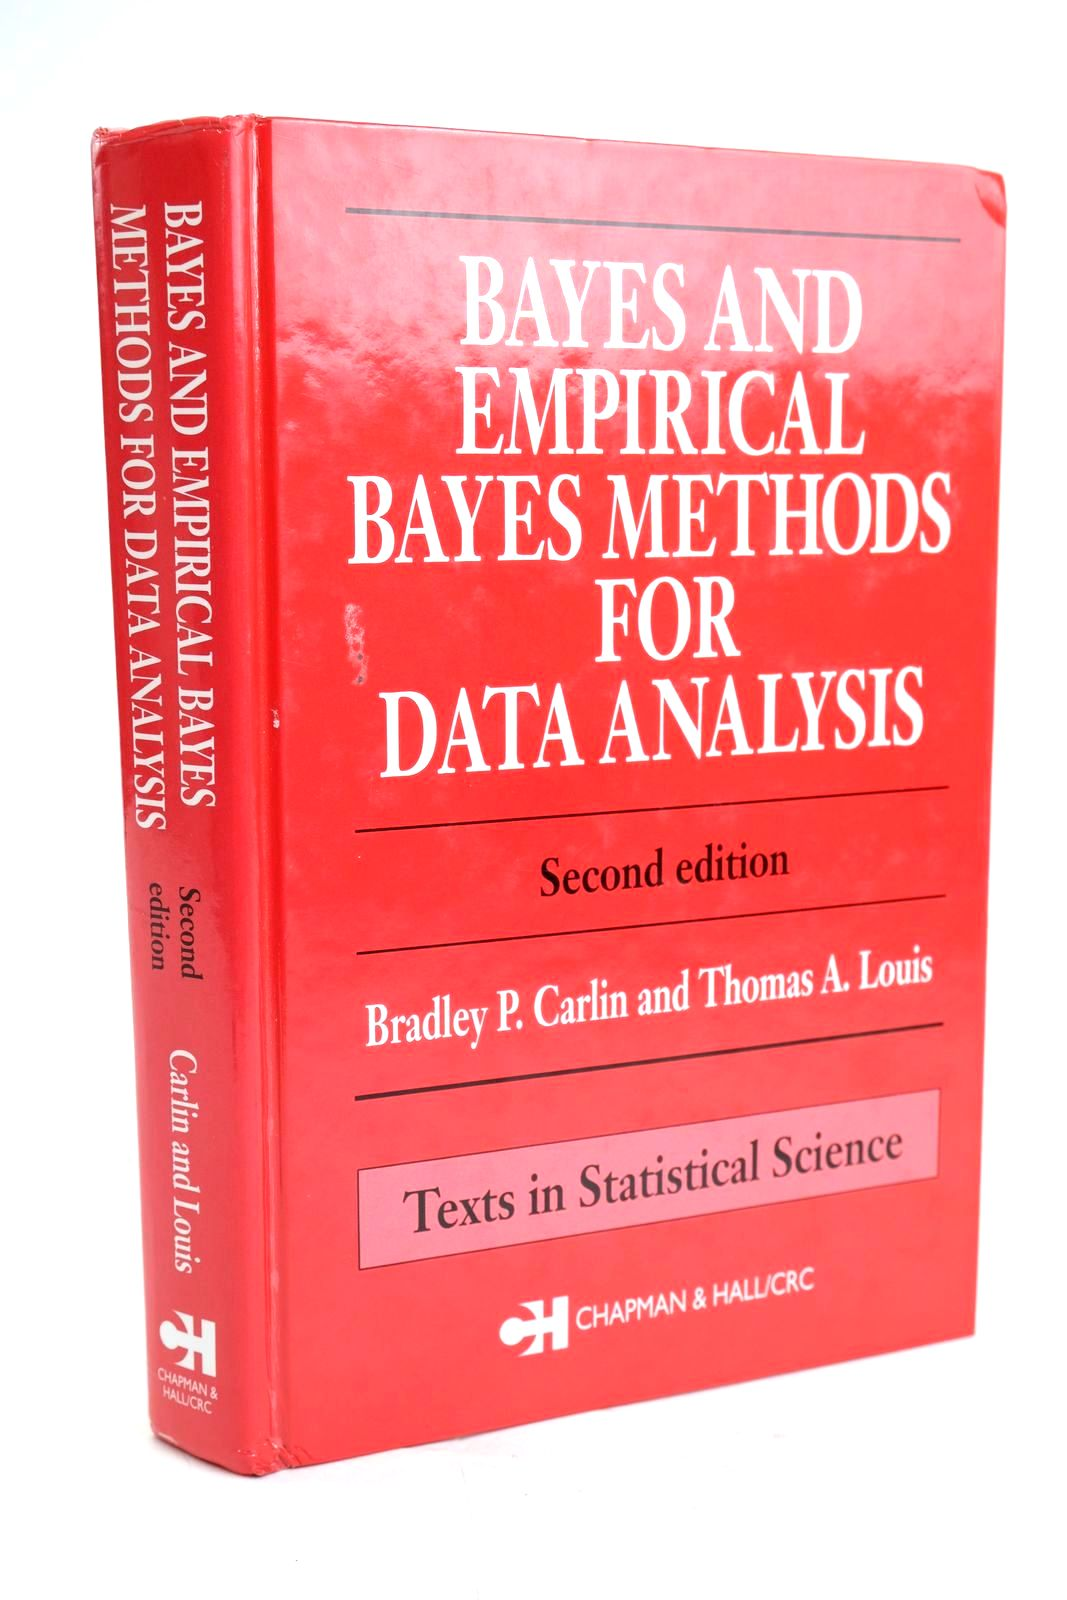 Photo of BAYES AND EMPIRICAL BAYES METHODS FOR DATA ANALYSIS written by Carlin, Bradley P. Louis, Thomas A. published by Chapman & Hall/Crc (STOCK CODE: 1319630)  for sale by Stella & Rose's Books